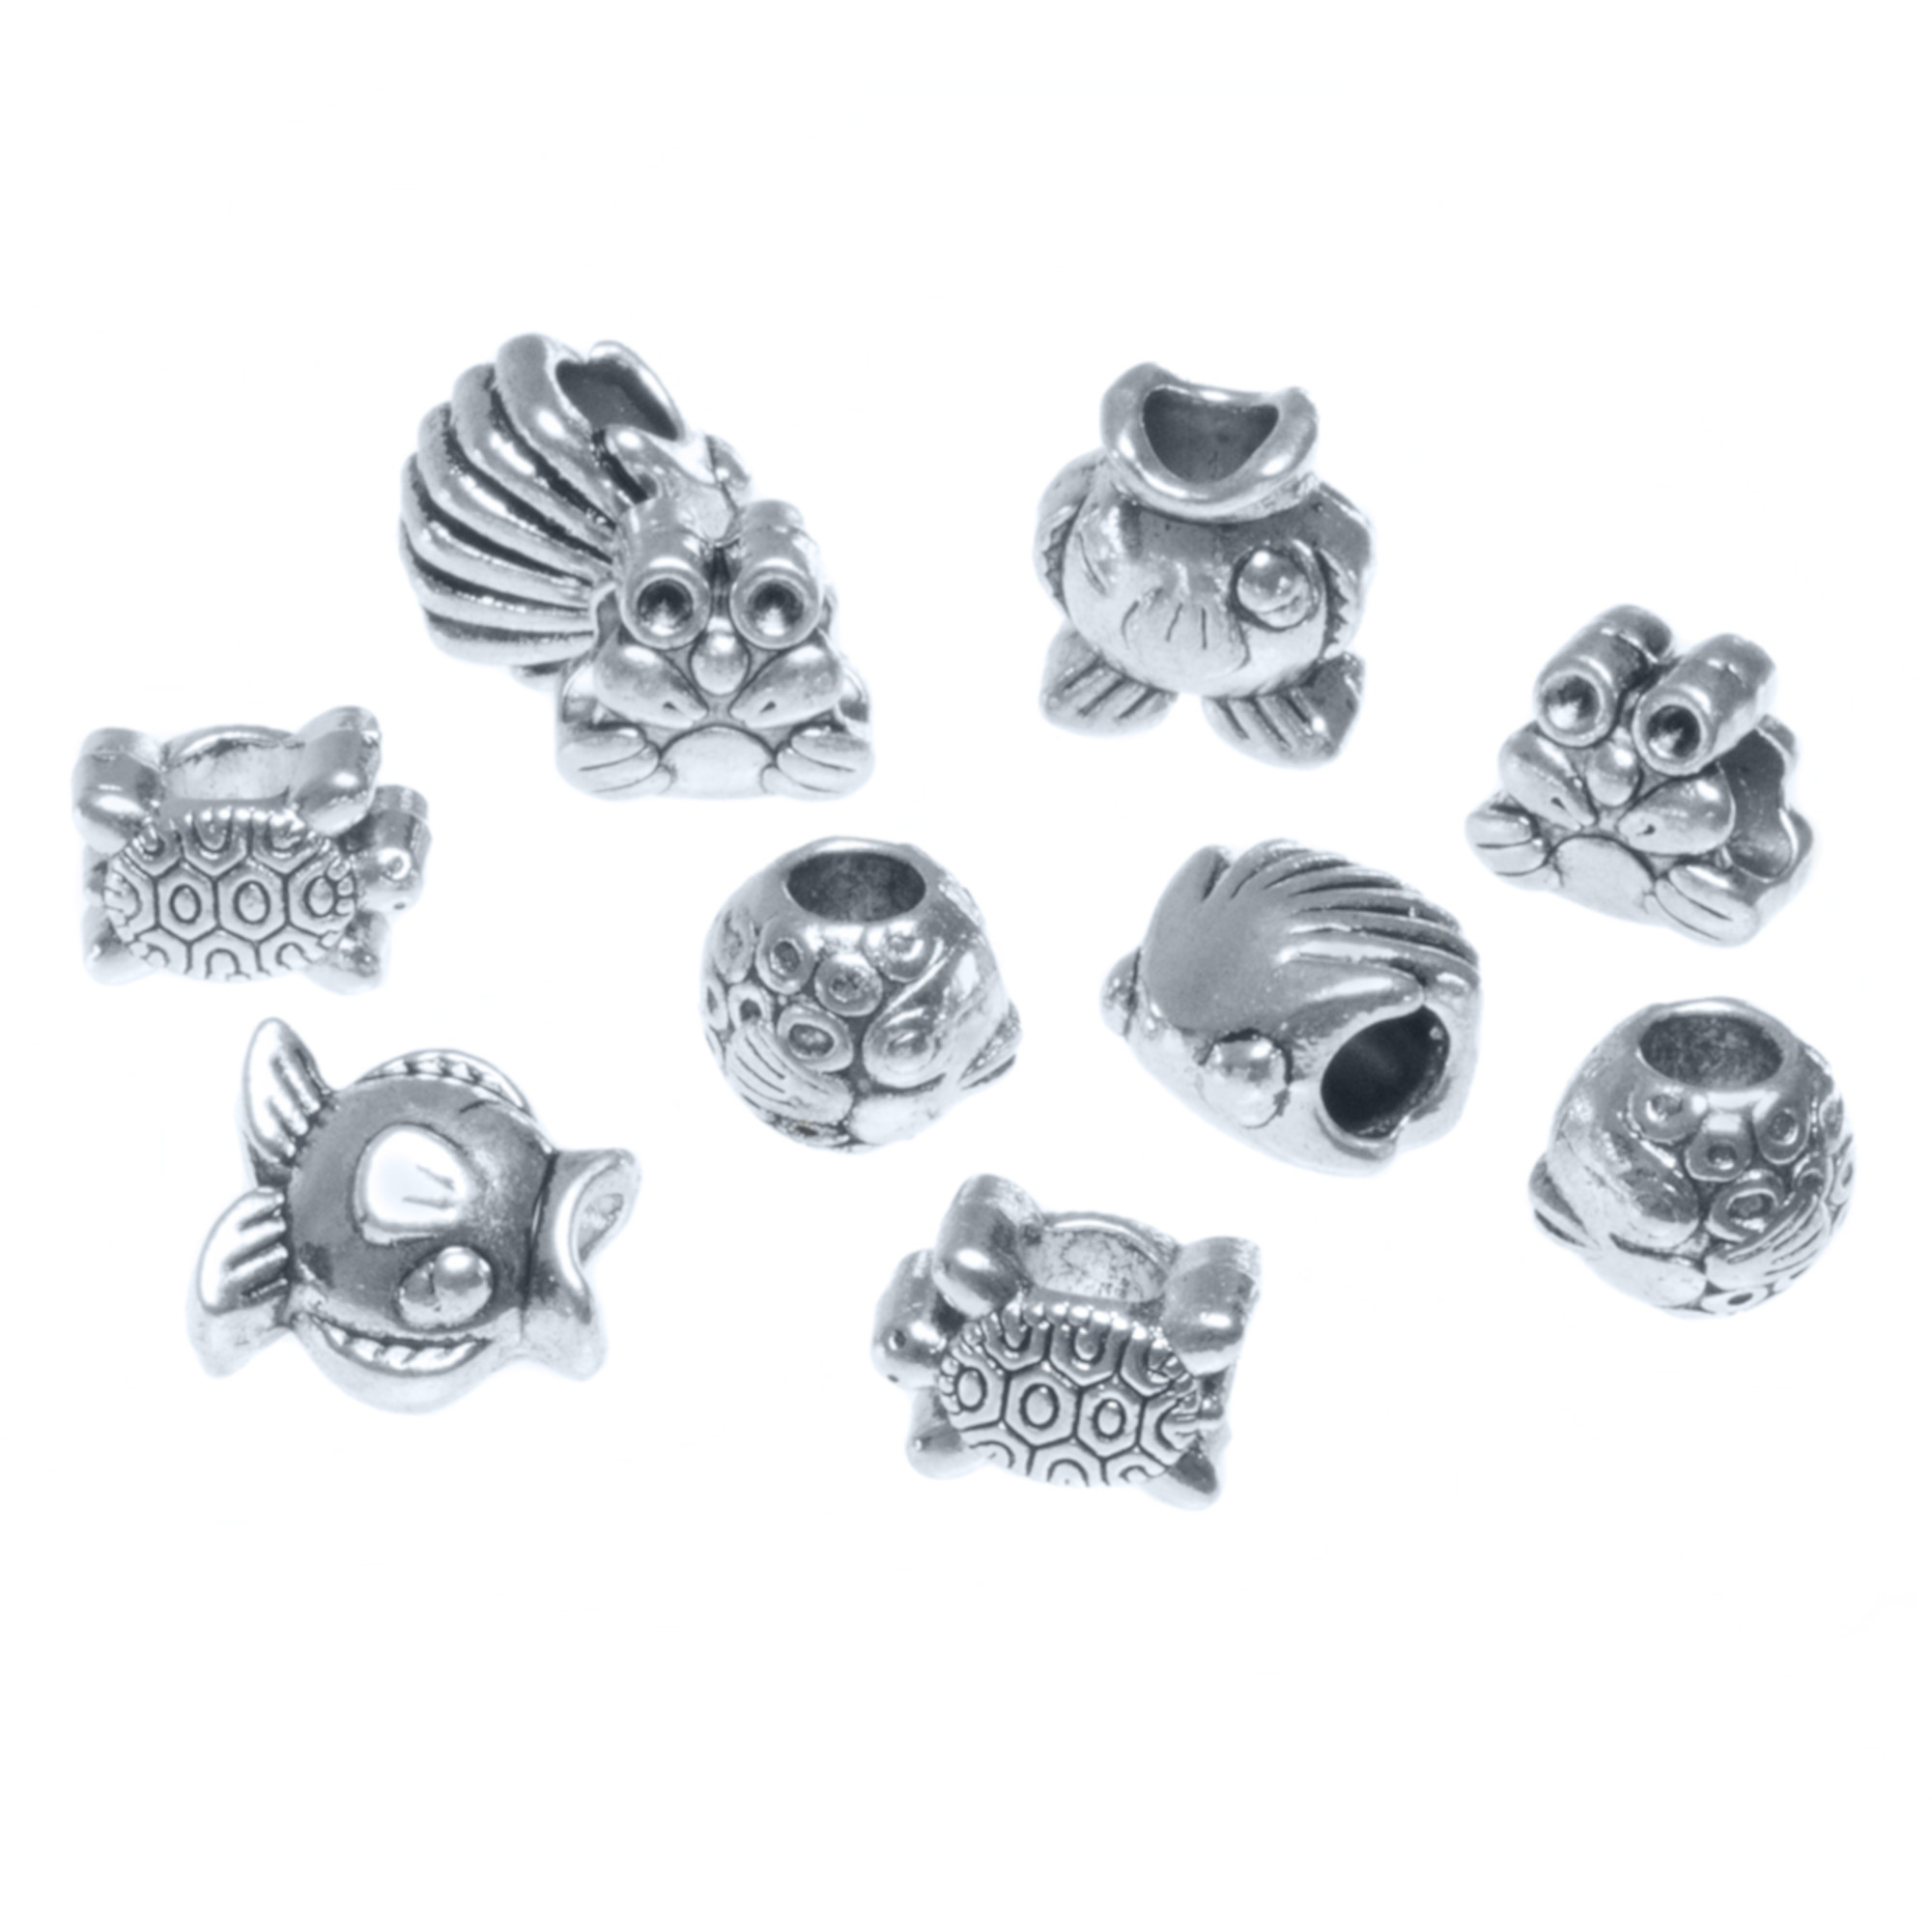 Craft County Assorted 5mm Silver Metal Bead Packs (10 Piece), Various Theme Options with Multiple Spacers and Charms - Great for Necklaces, Bracelets, DIY Crafts and Jewelry